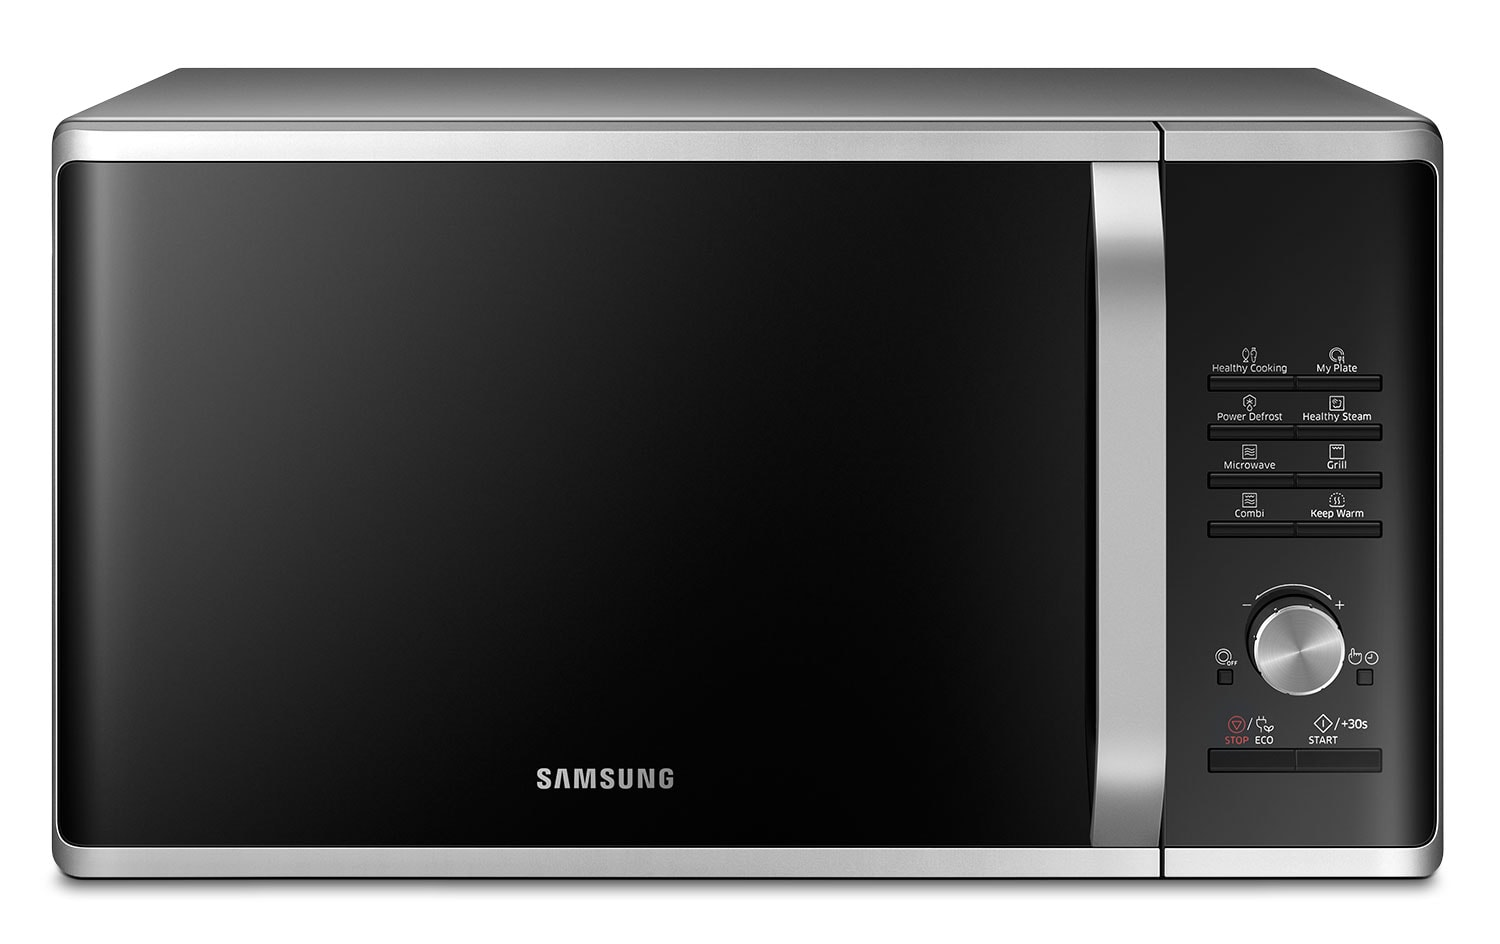 Cooking Products - Samsung Stainless Steel Countertop Microwave (1.1 ...